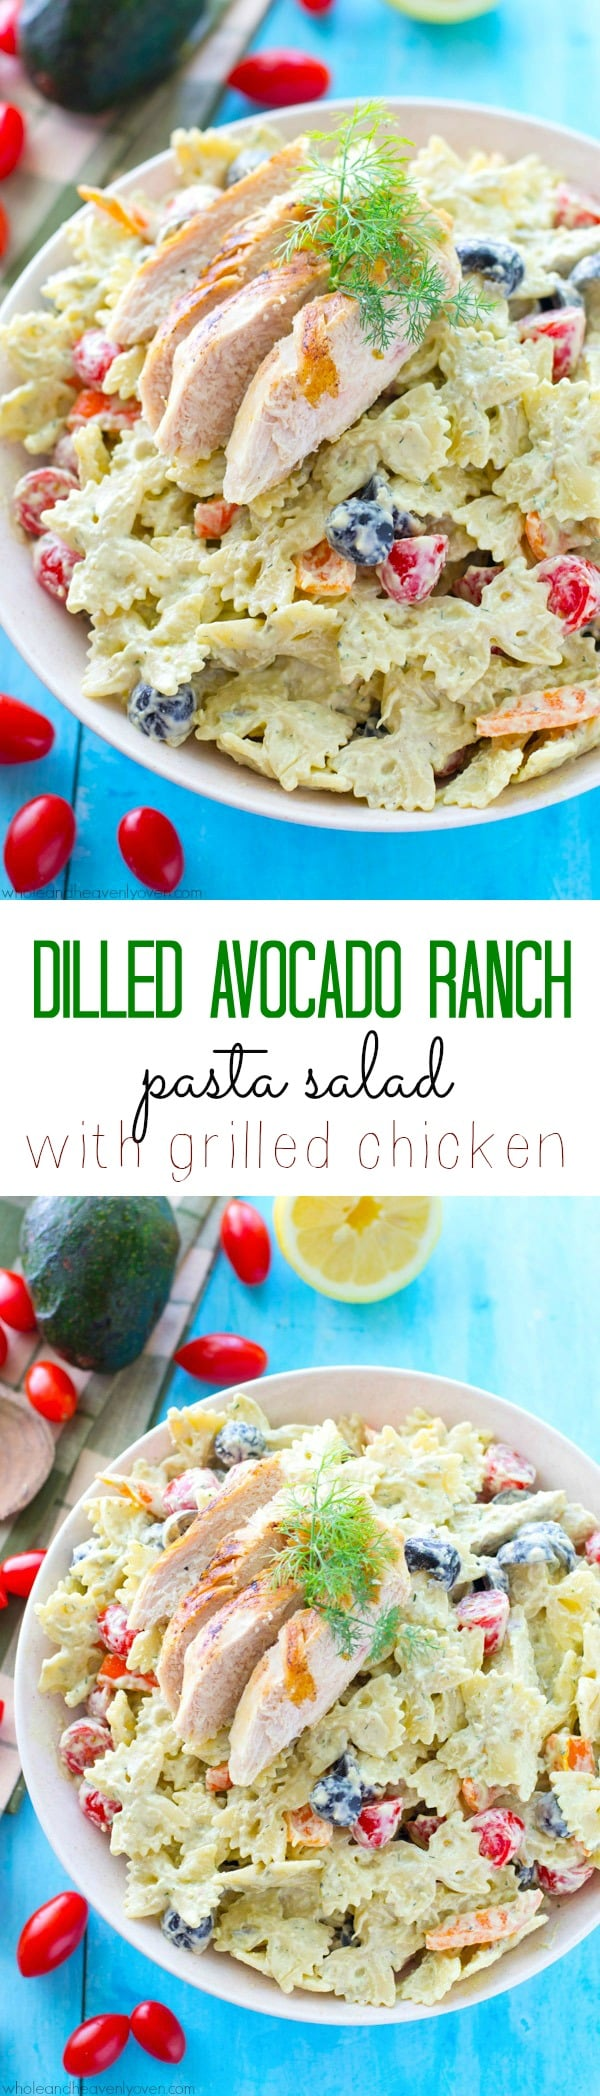 This creamy pasta salad is jam-packed with juicy grilled chicken, a rainbow of colorful veggies, and a light, flavorful homemade avocado ranch dressing. Bring this salad to any picnic and watch it vanish!